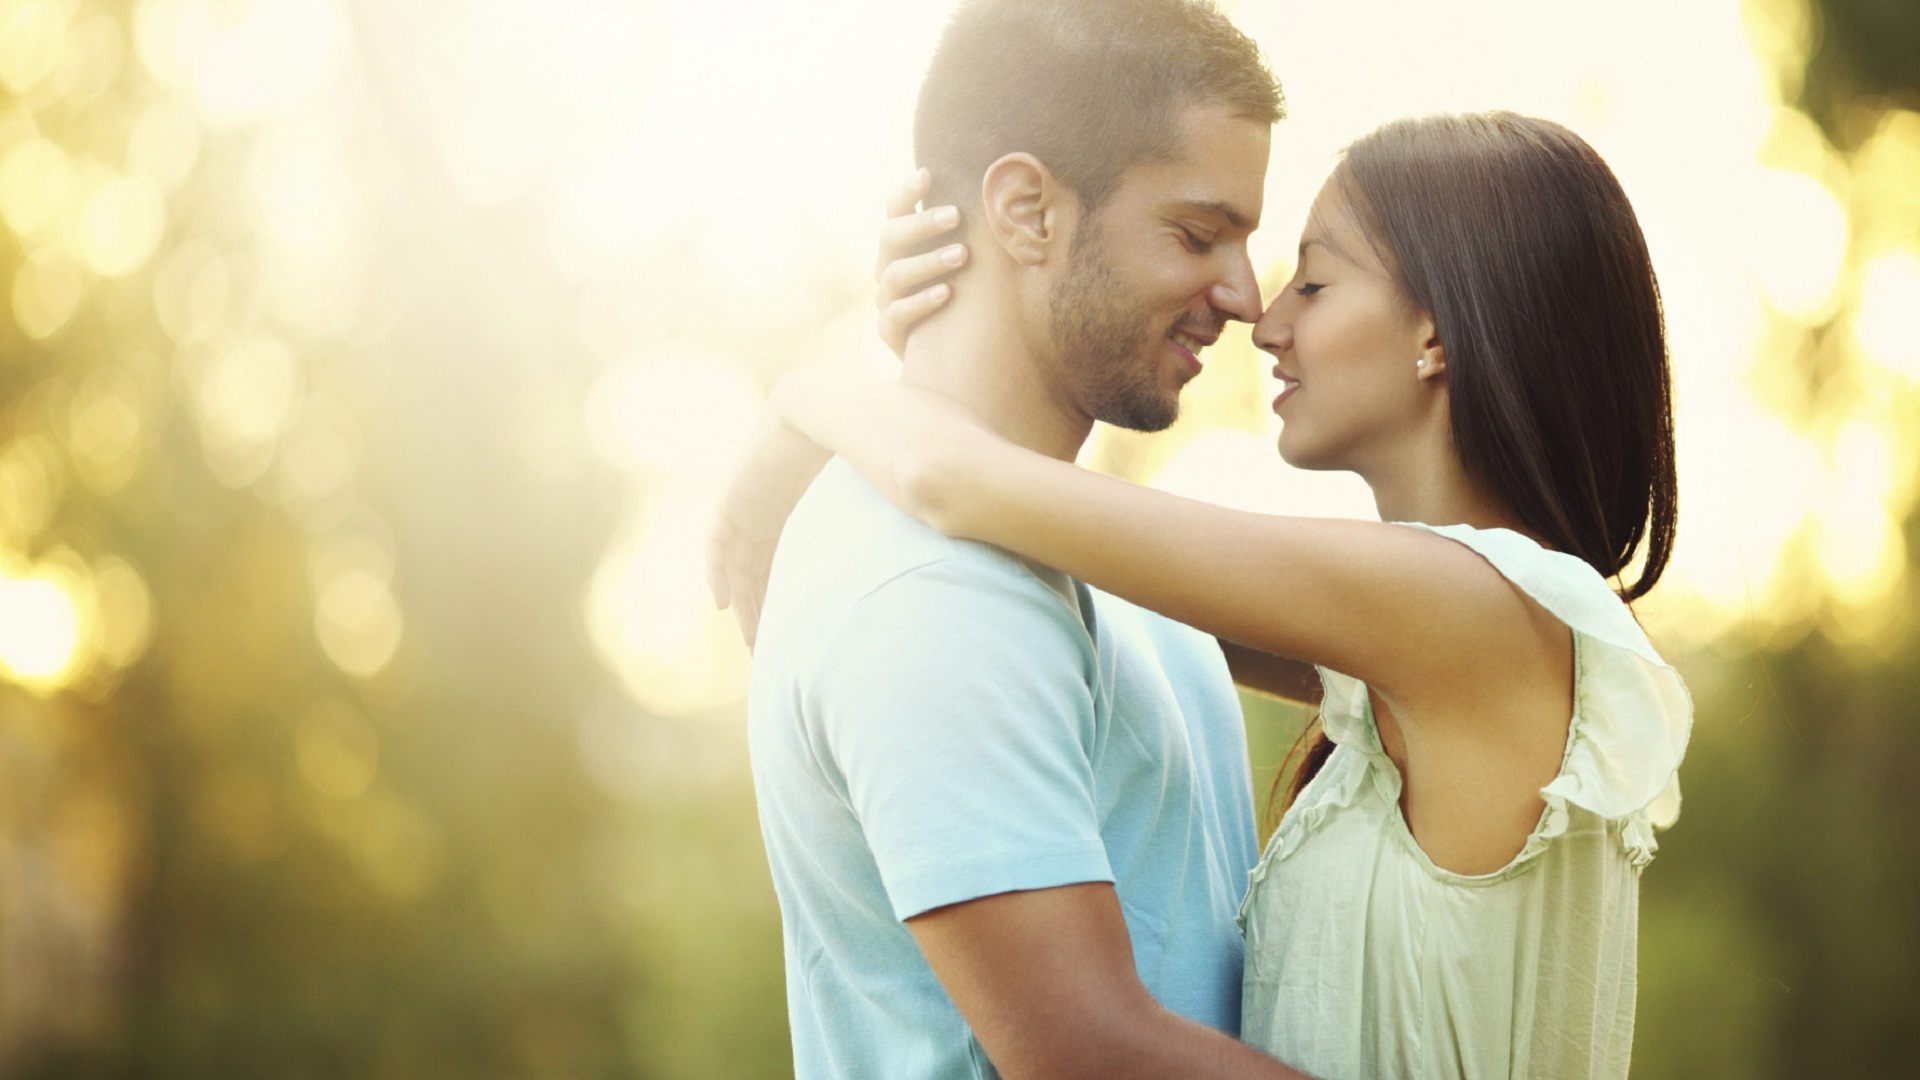 30 The Most Touching And Inspiring Quotes On Love